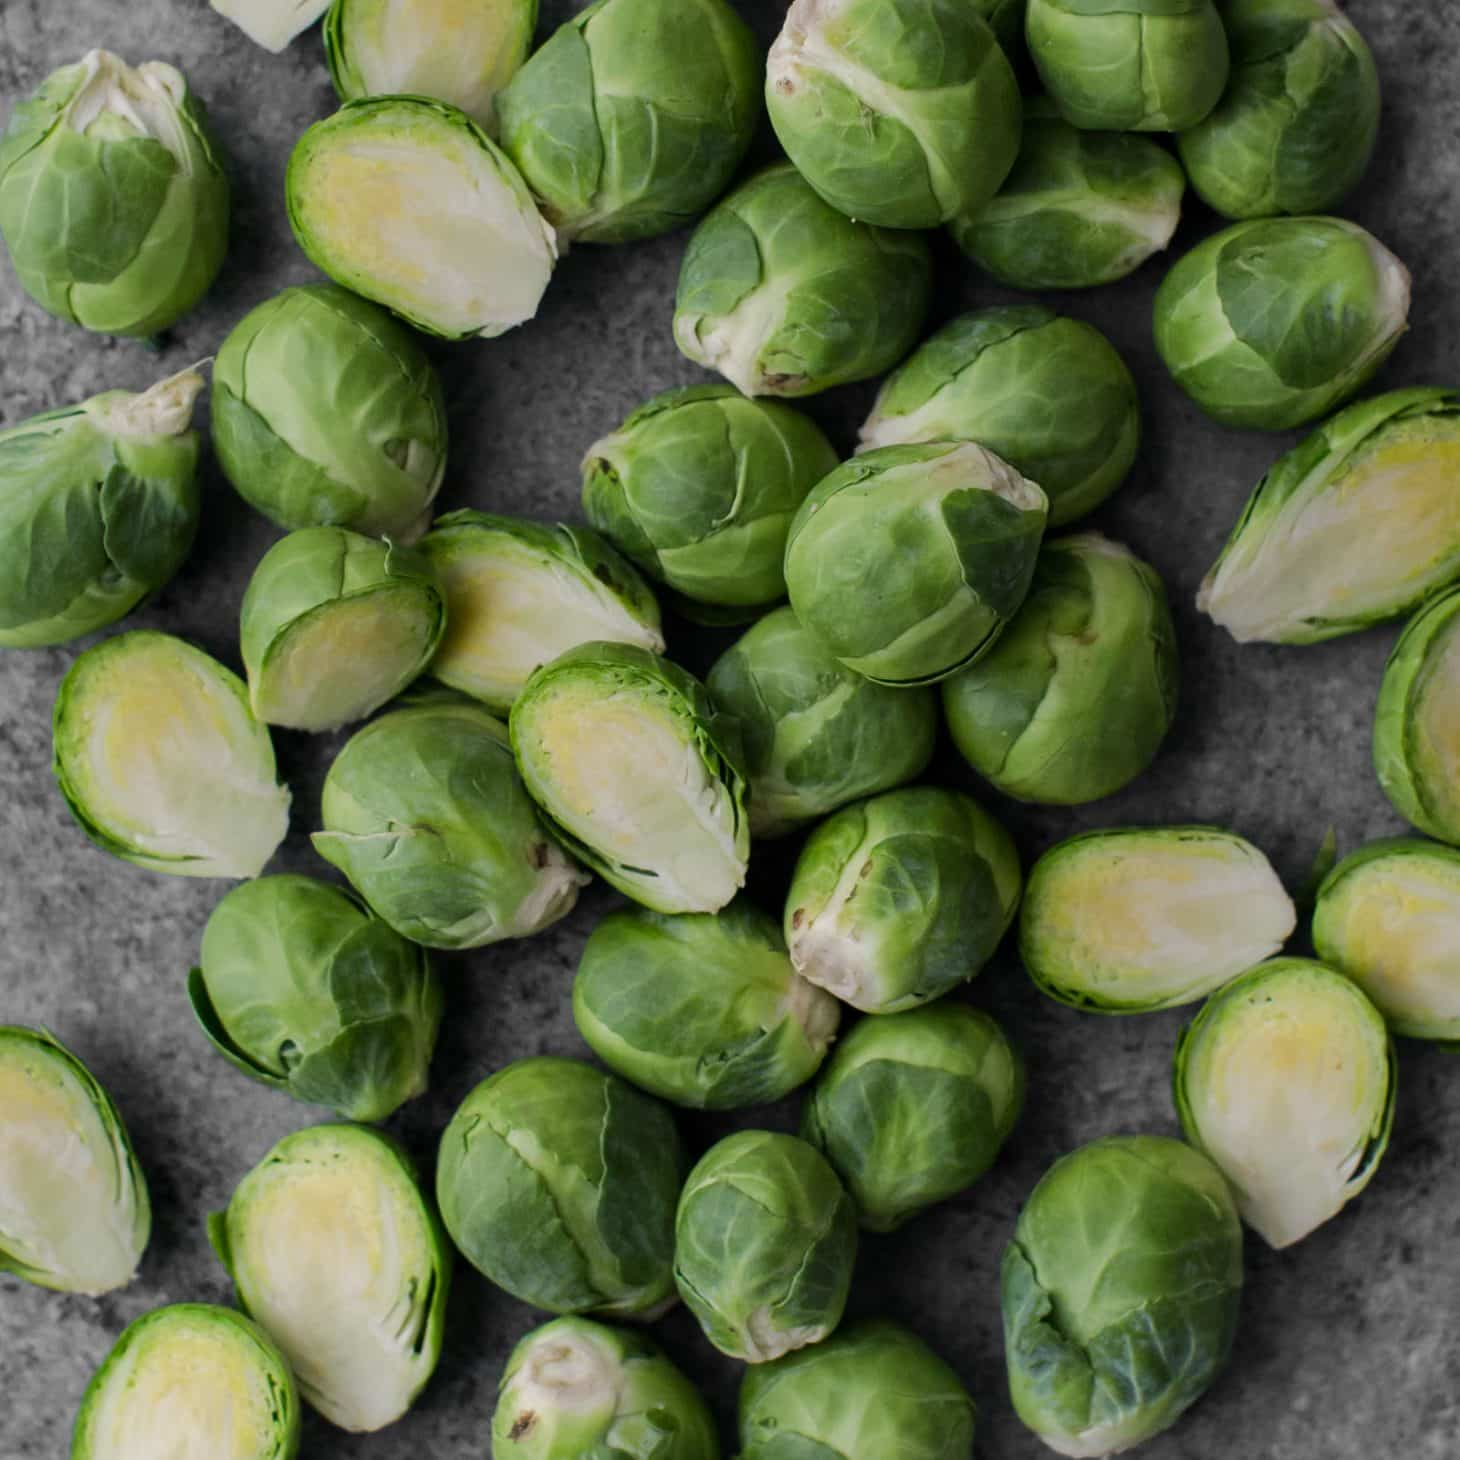 Brussels Sprouts- Explore an Ingredient